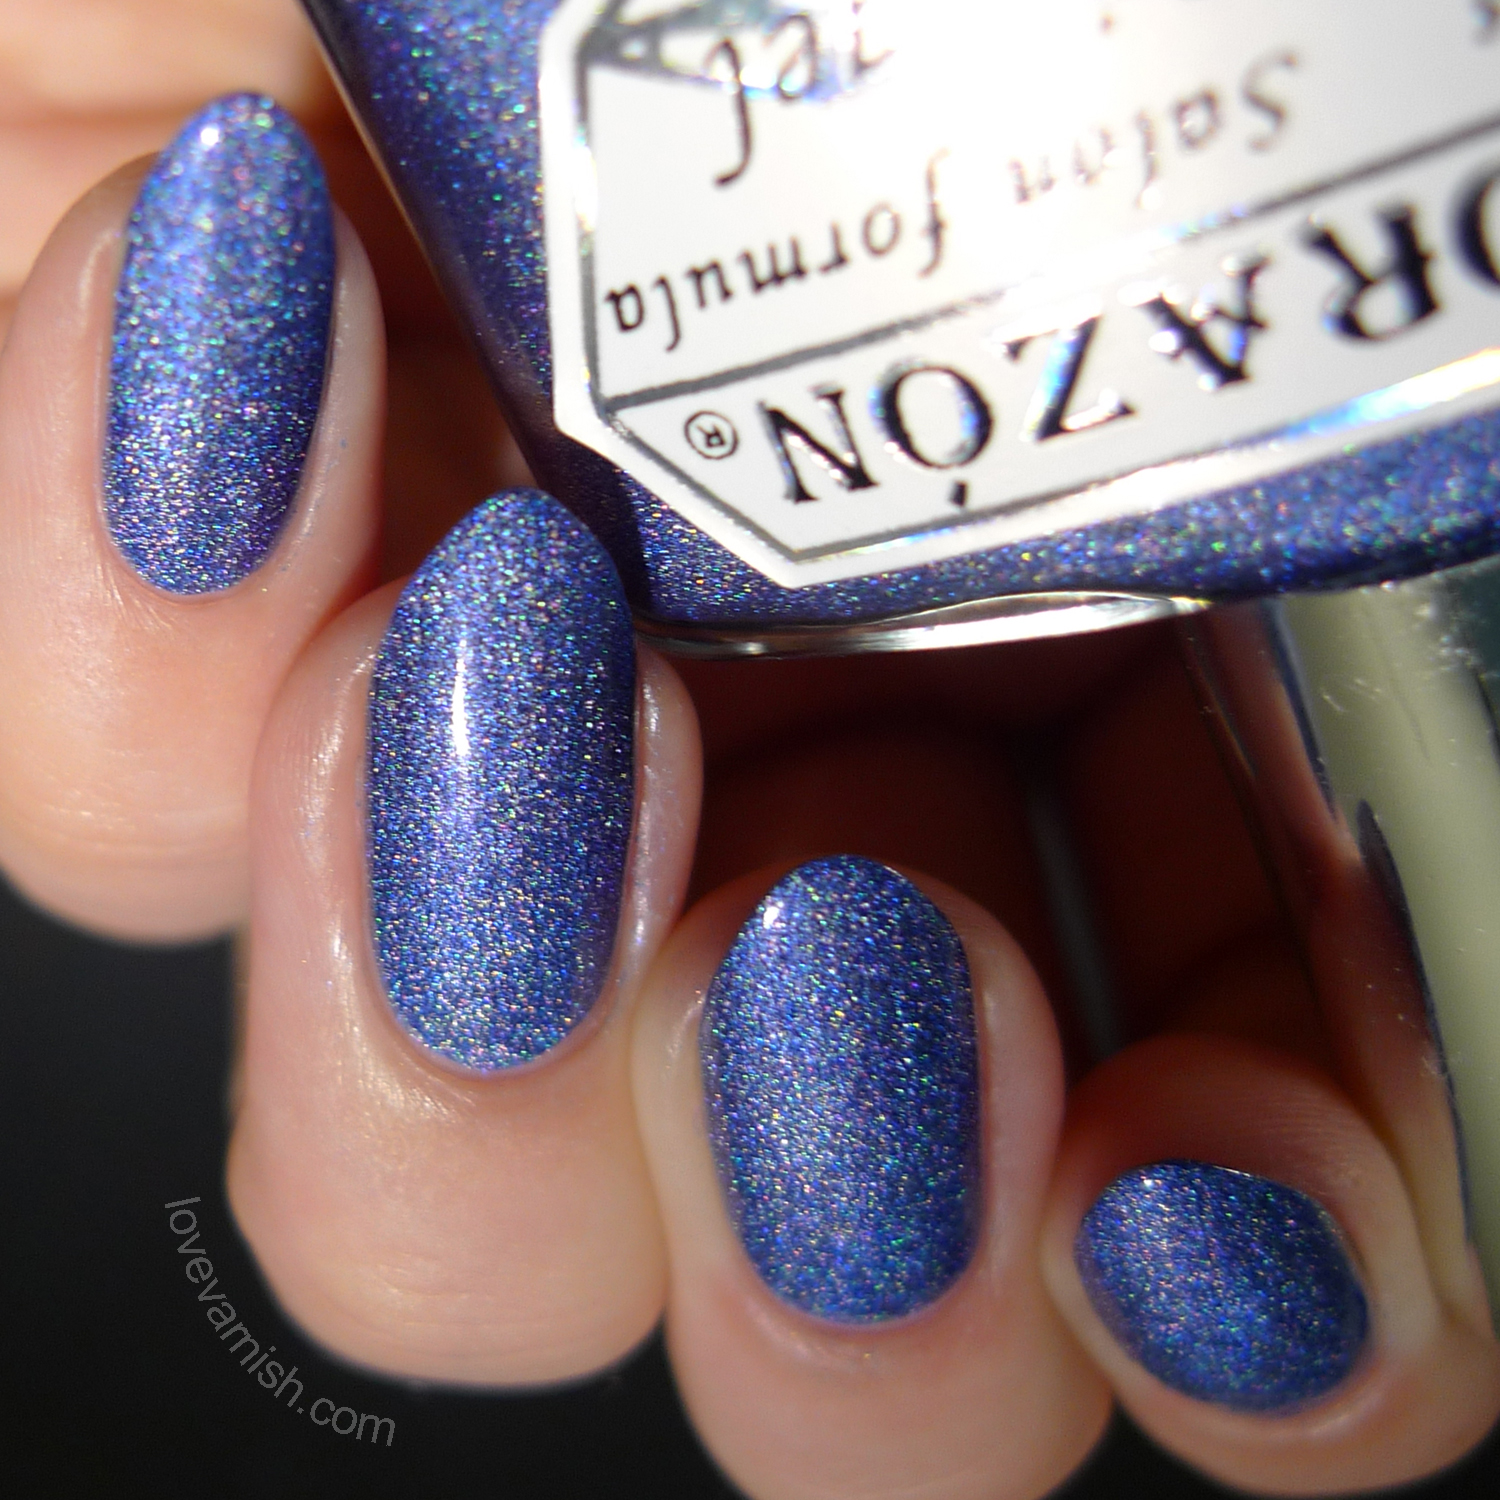 El Corazon Prisma 423-26 swatches and review